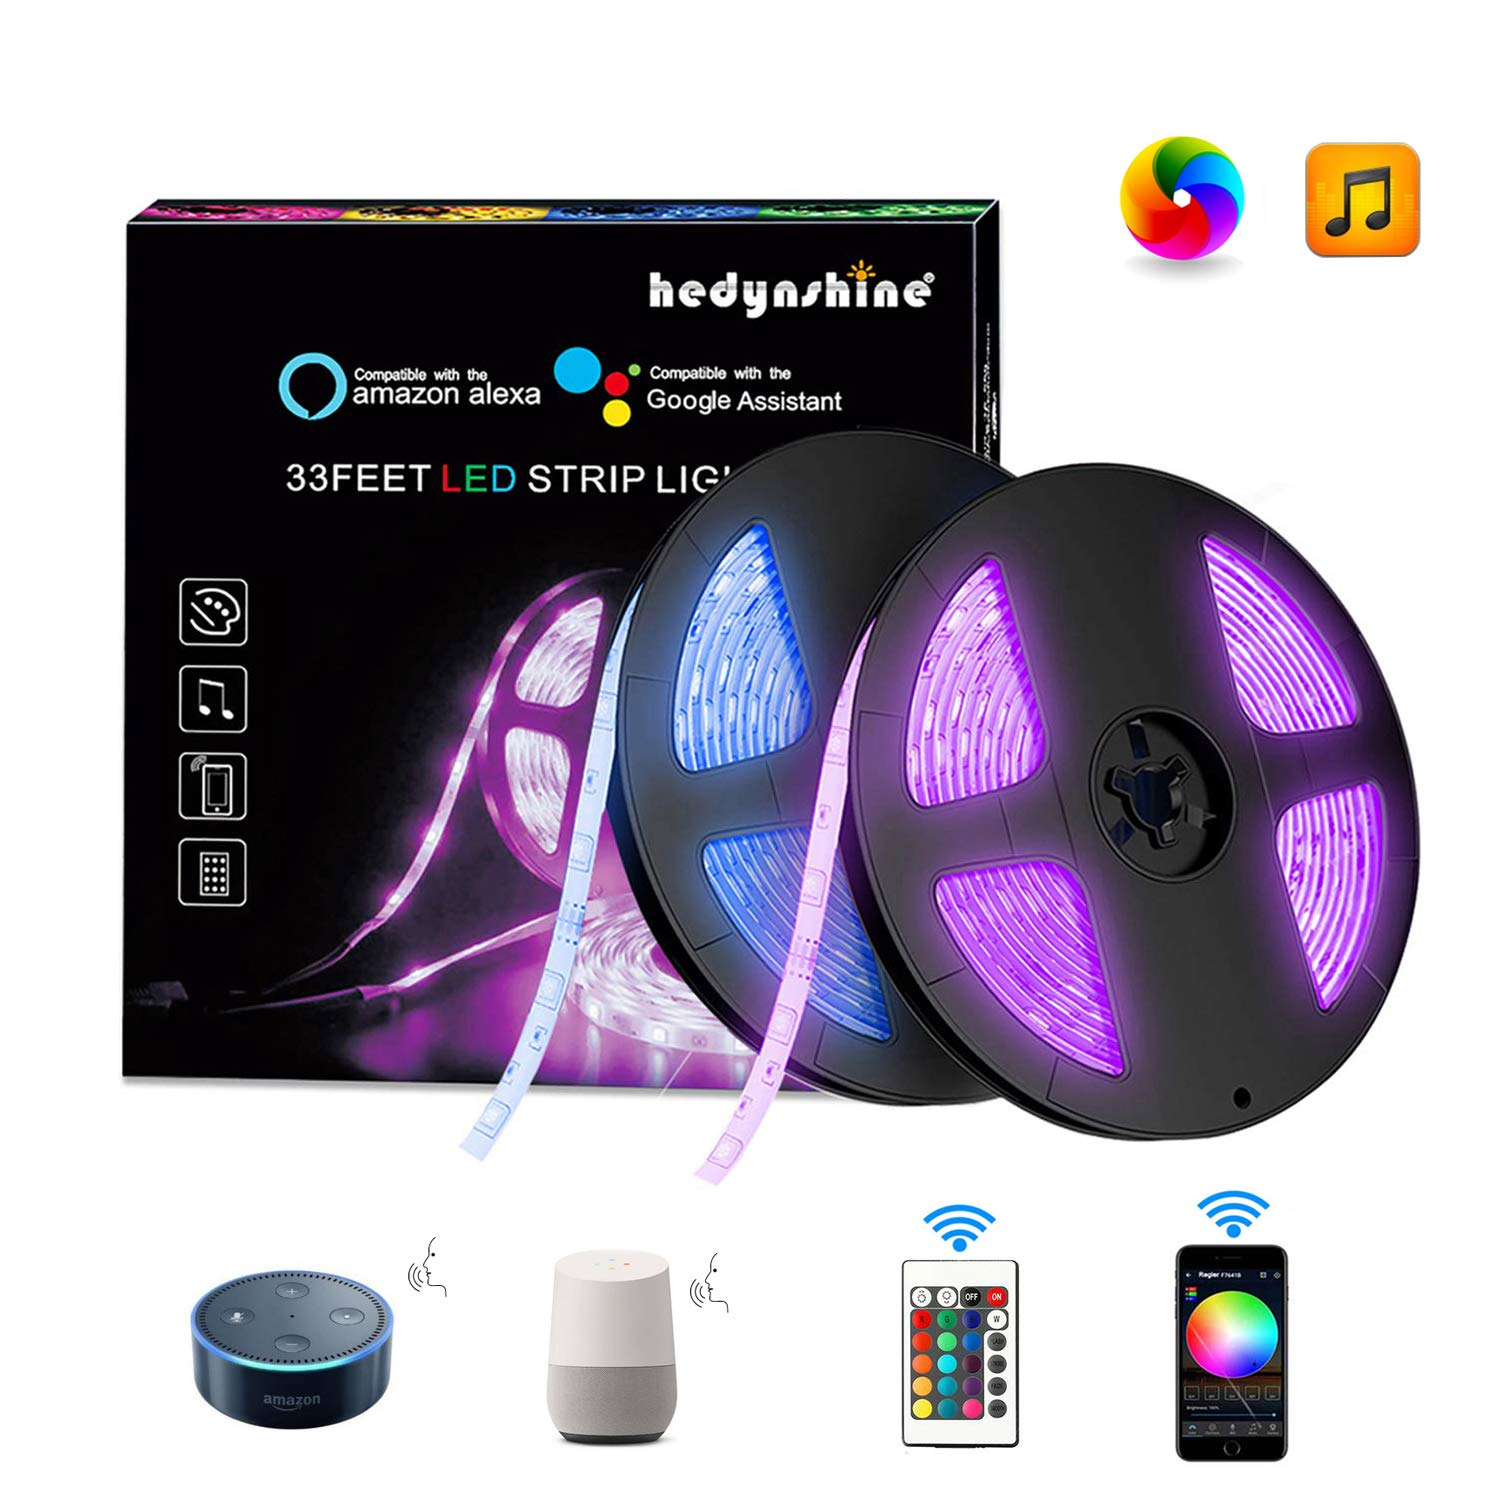 Hedynshine 33 Ft LED Strip Lights, Waterproof Tape Lights with 300 LEDs SMD 5050 RGB Rope Lights, Sync to Music, 24 Key Remote Control and Compatible with Alexa/Google Home,WiFi LED Lights Strip